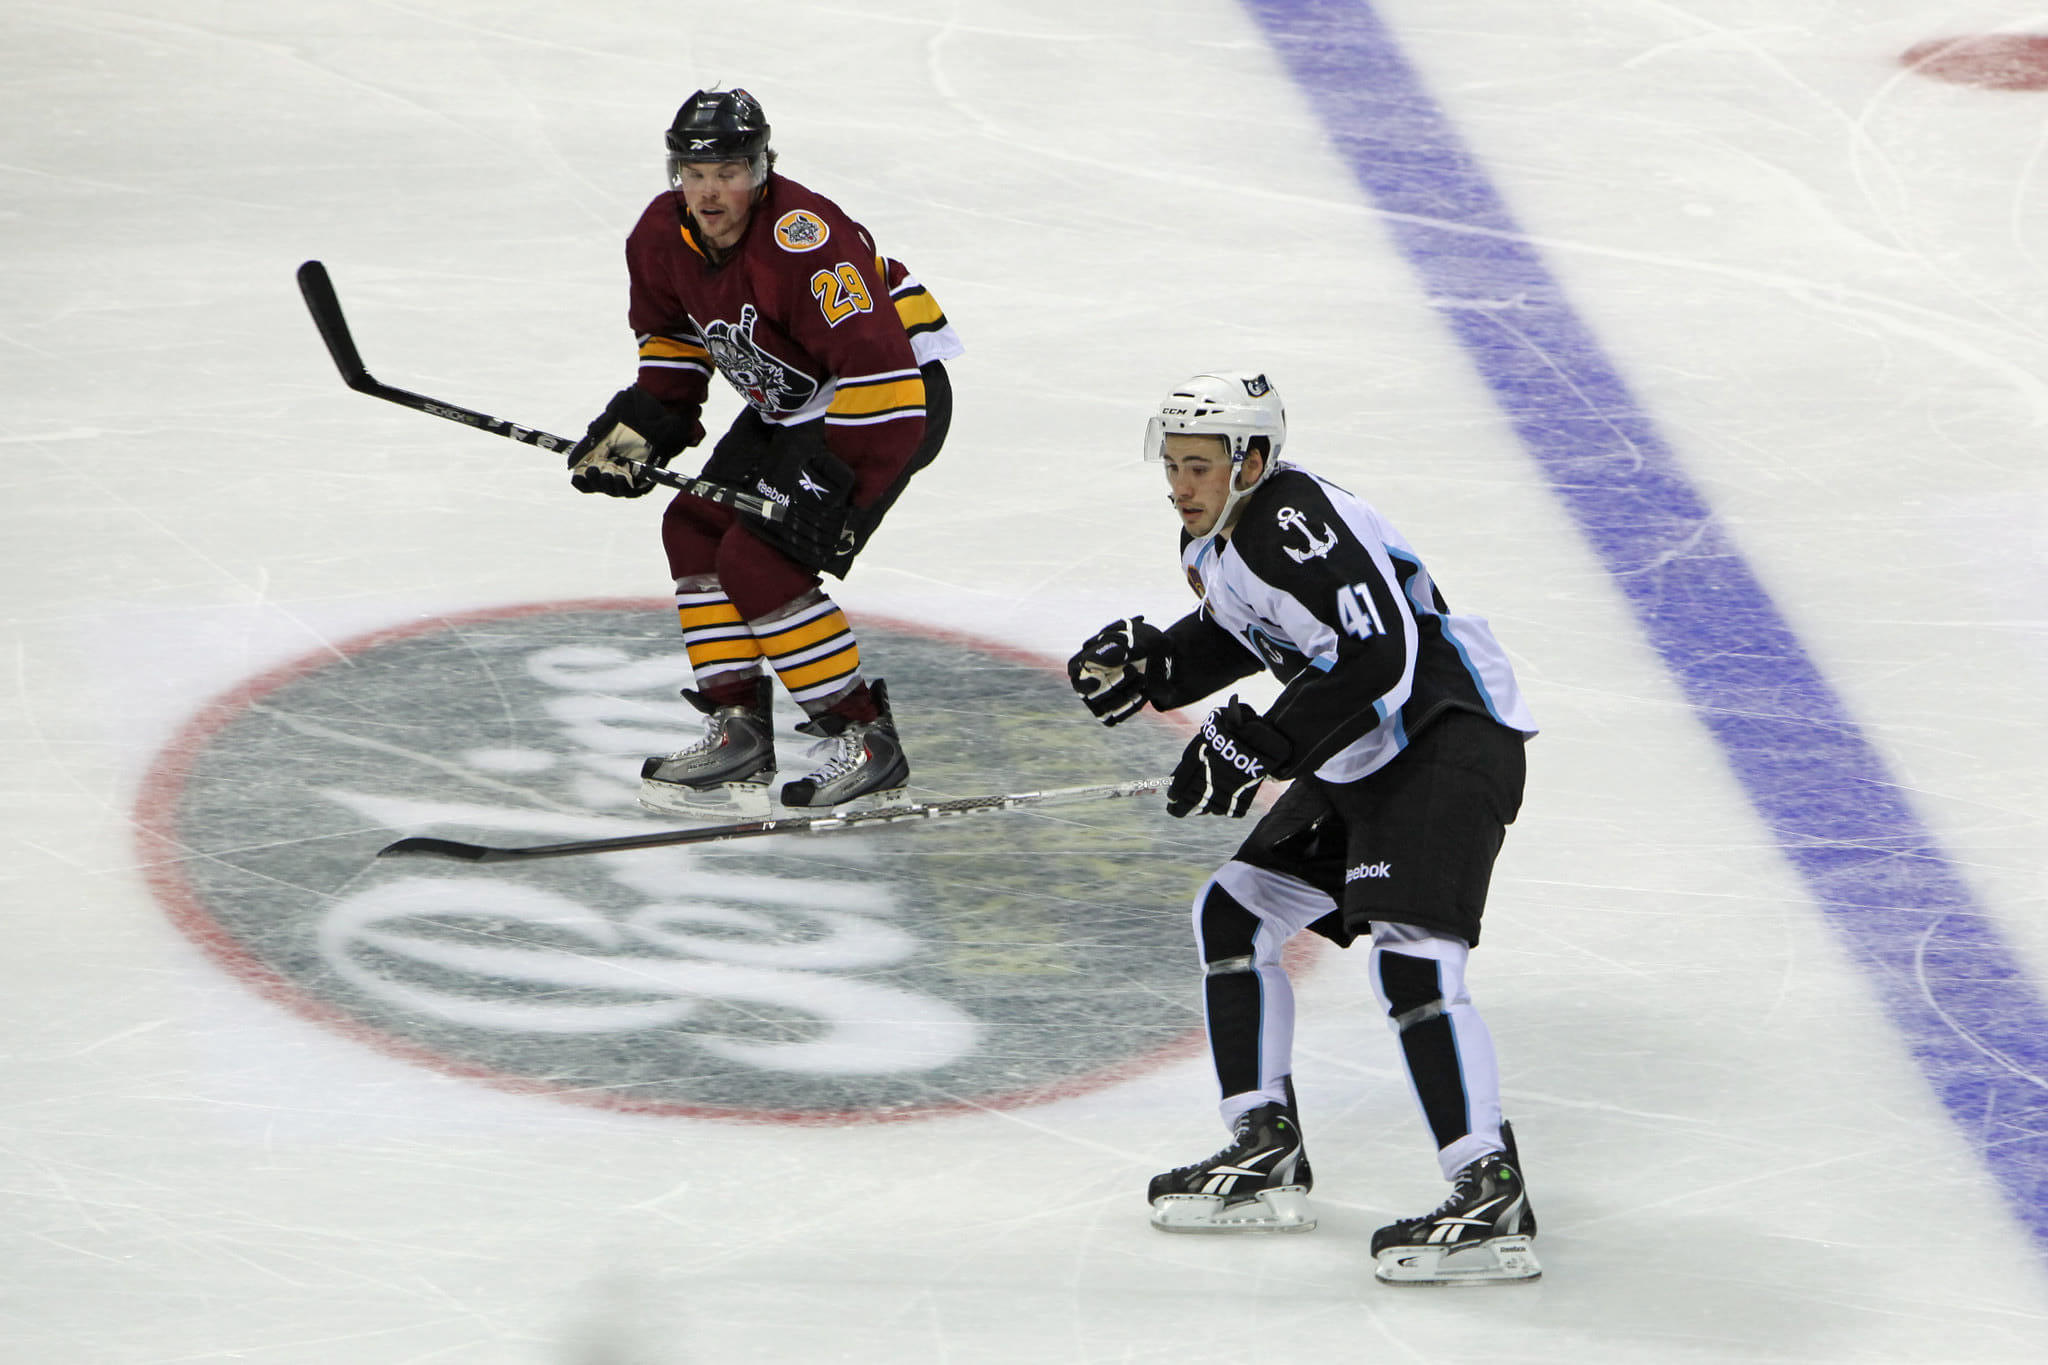 Milwaukee Admirals vs Chicago Wolves AHL hockey rivalry